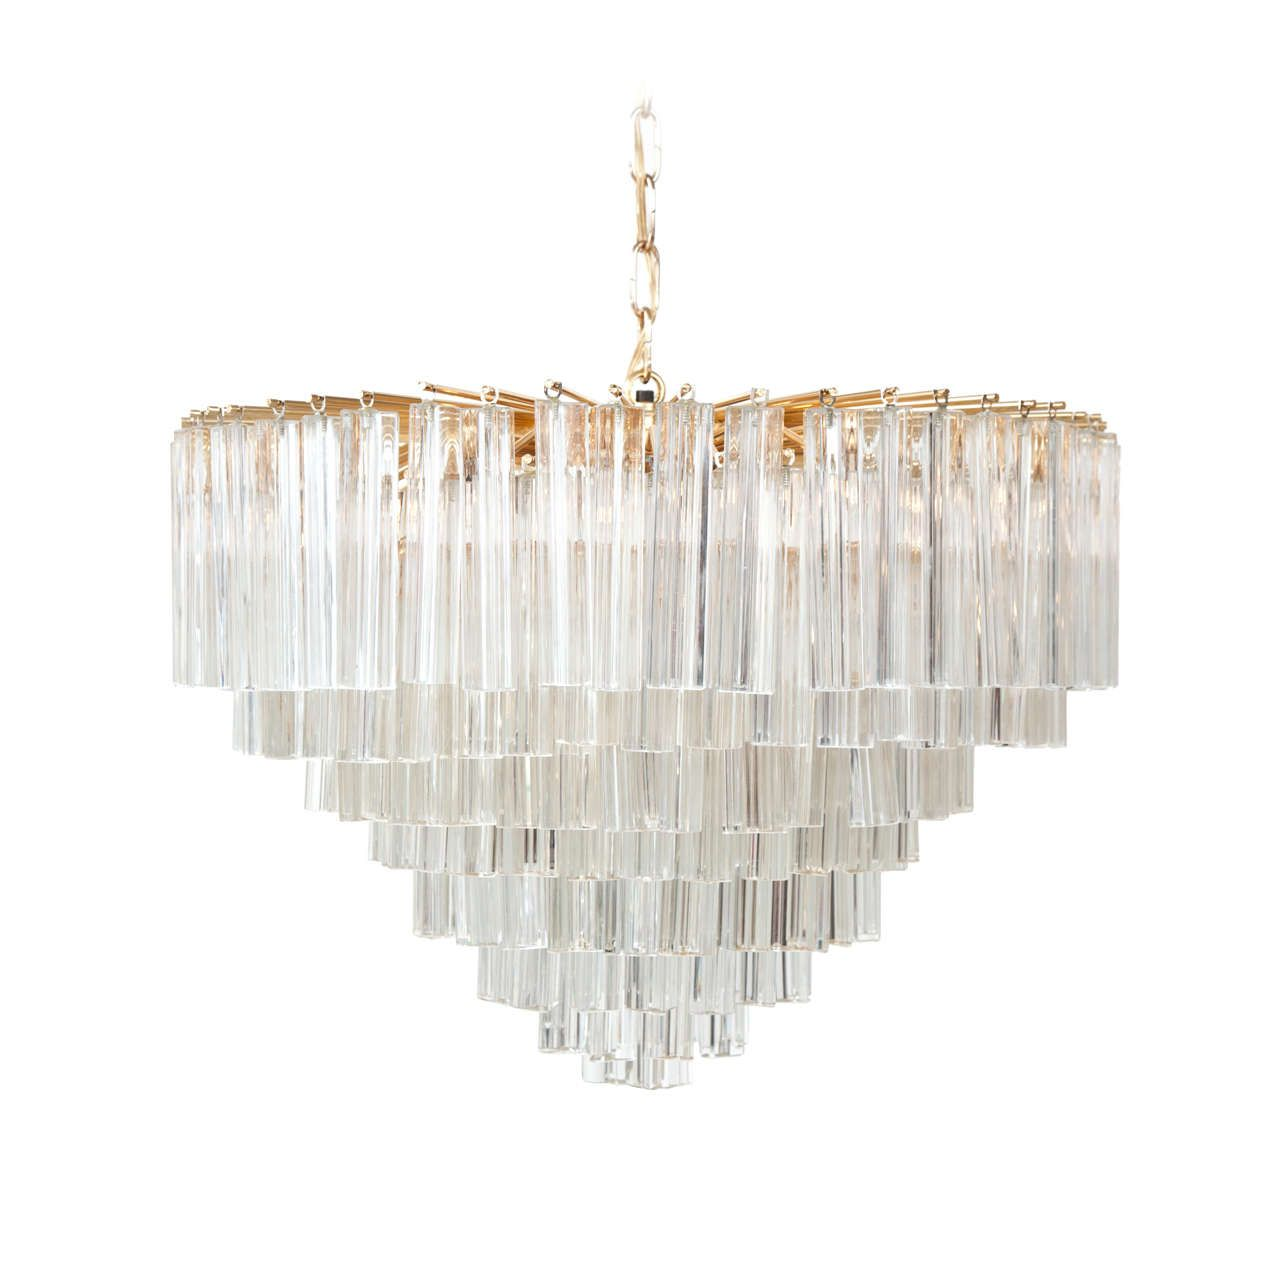 Sold vintage murano glass chandelier http1stdibs vintage murano glass chandelier aloadofball Gallery